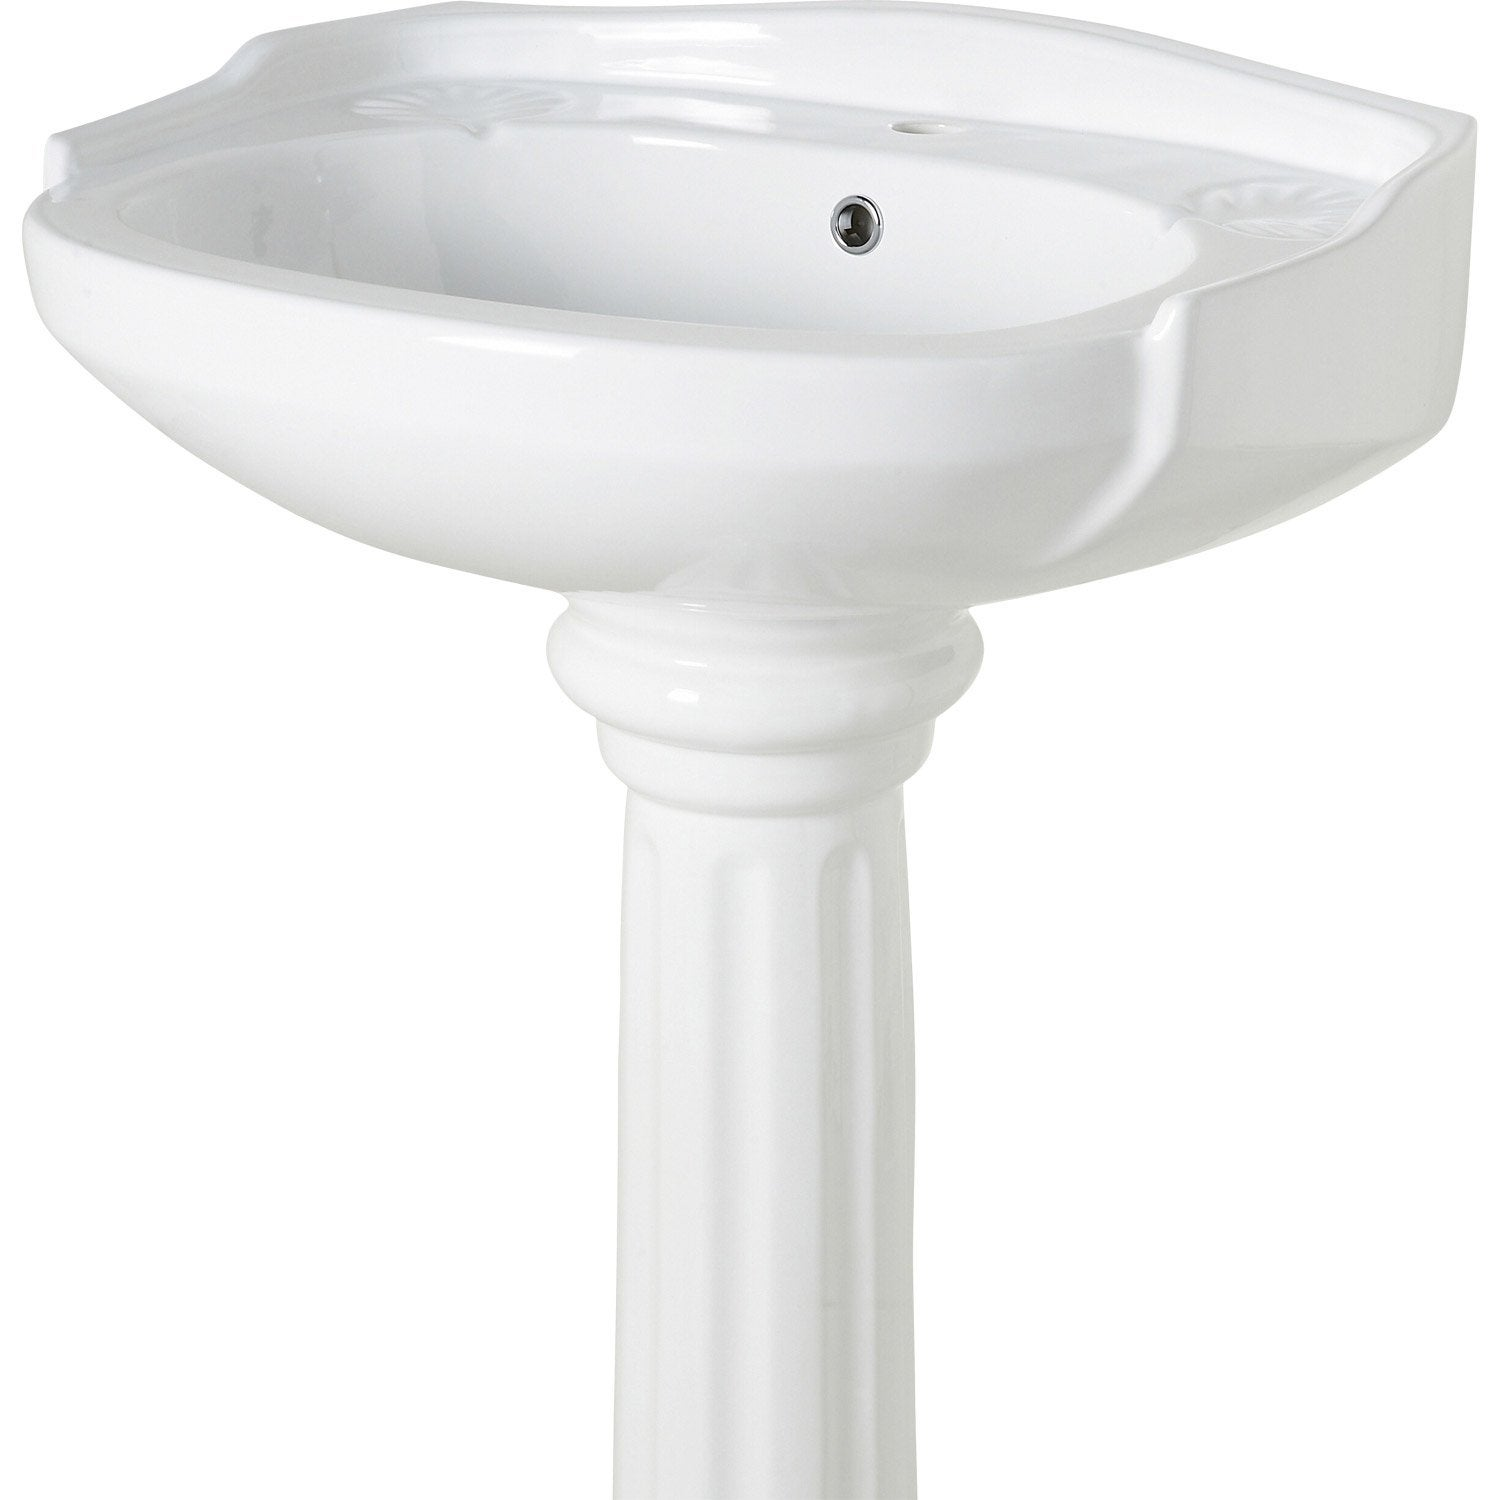 Lavabo pour colonne en c ramique blanc retro leroy merlin for Lavabo le roy merlin